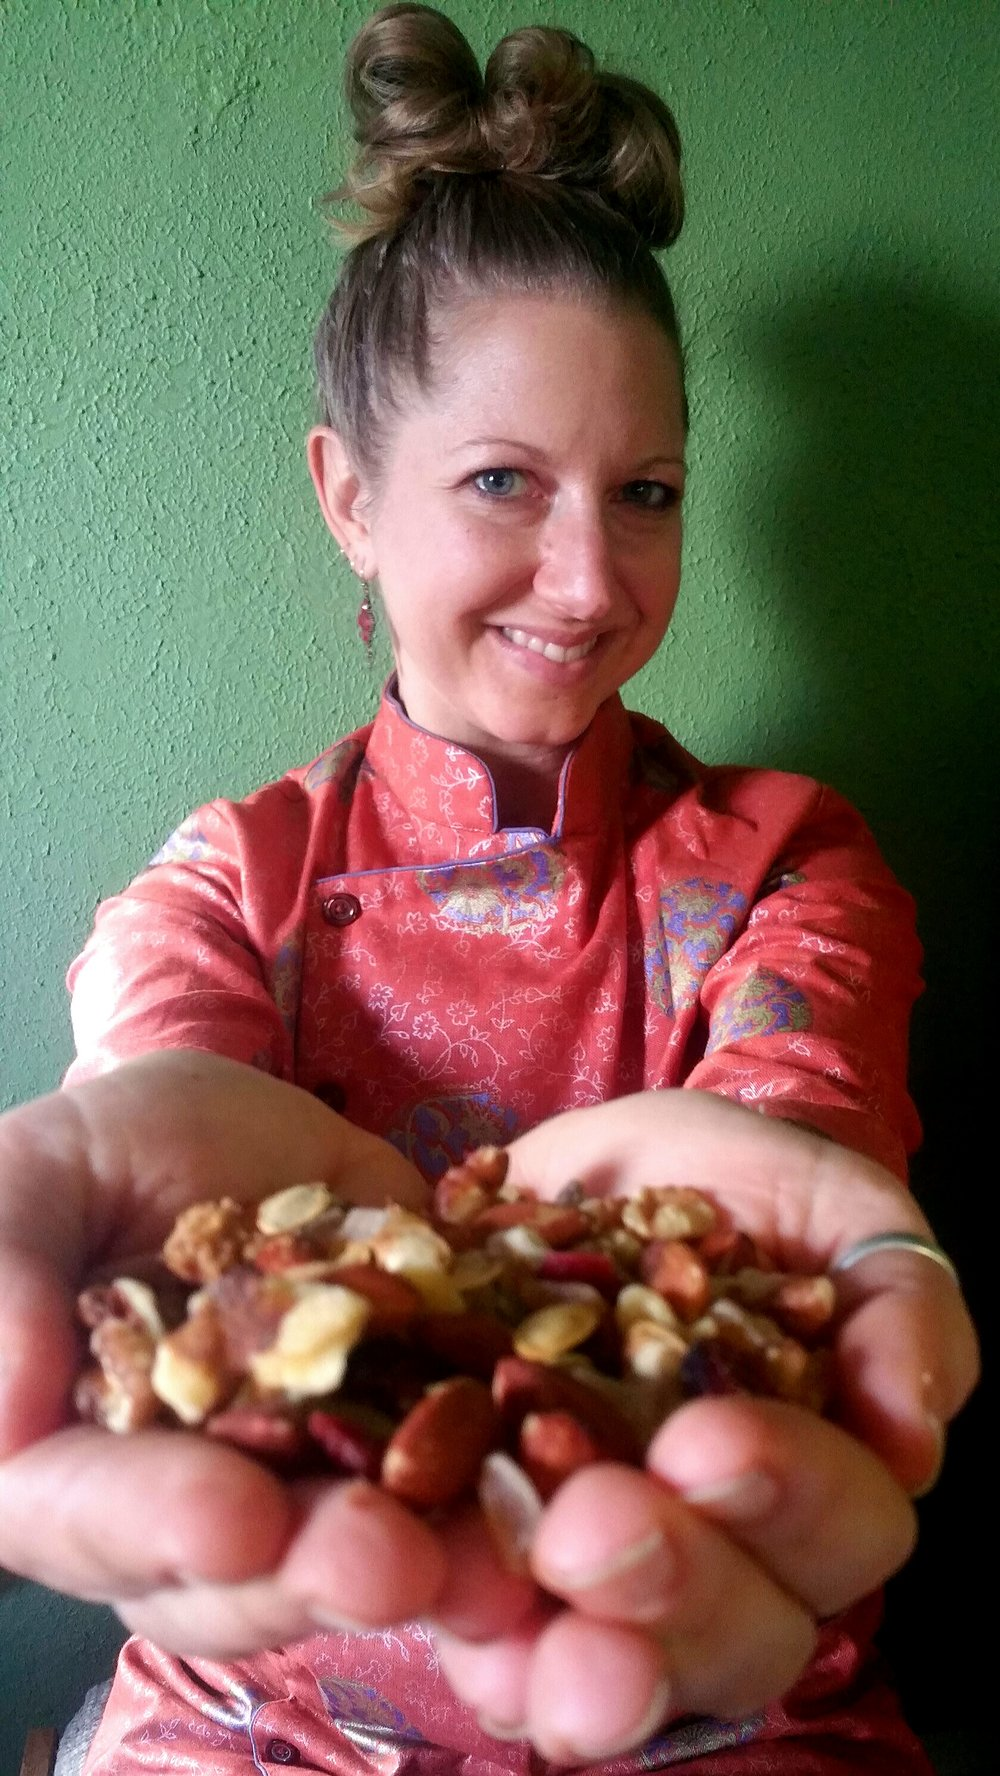 A photo of Lauren. She has dark hair in a bun, and she's smiling at the camera. She's holding nuts and seeds in her cupped palms, and her hands are close to the camera and slightly out of focus.